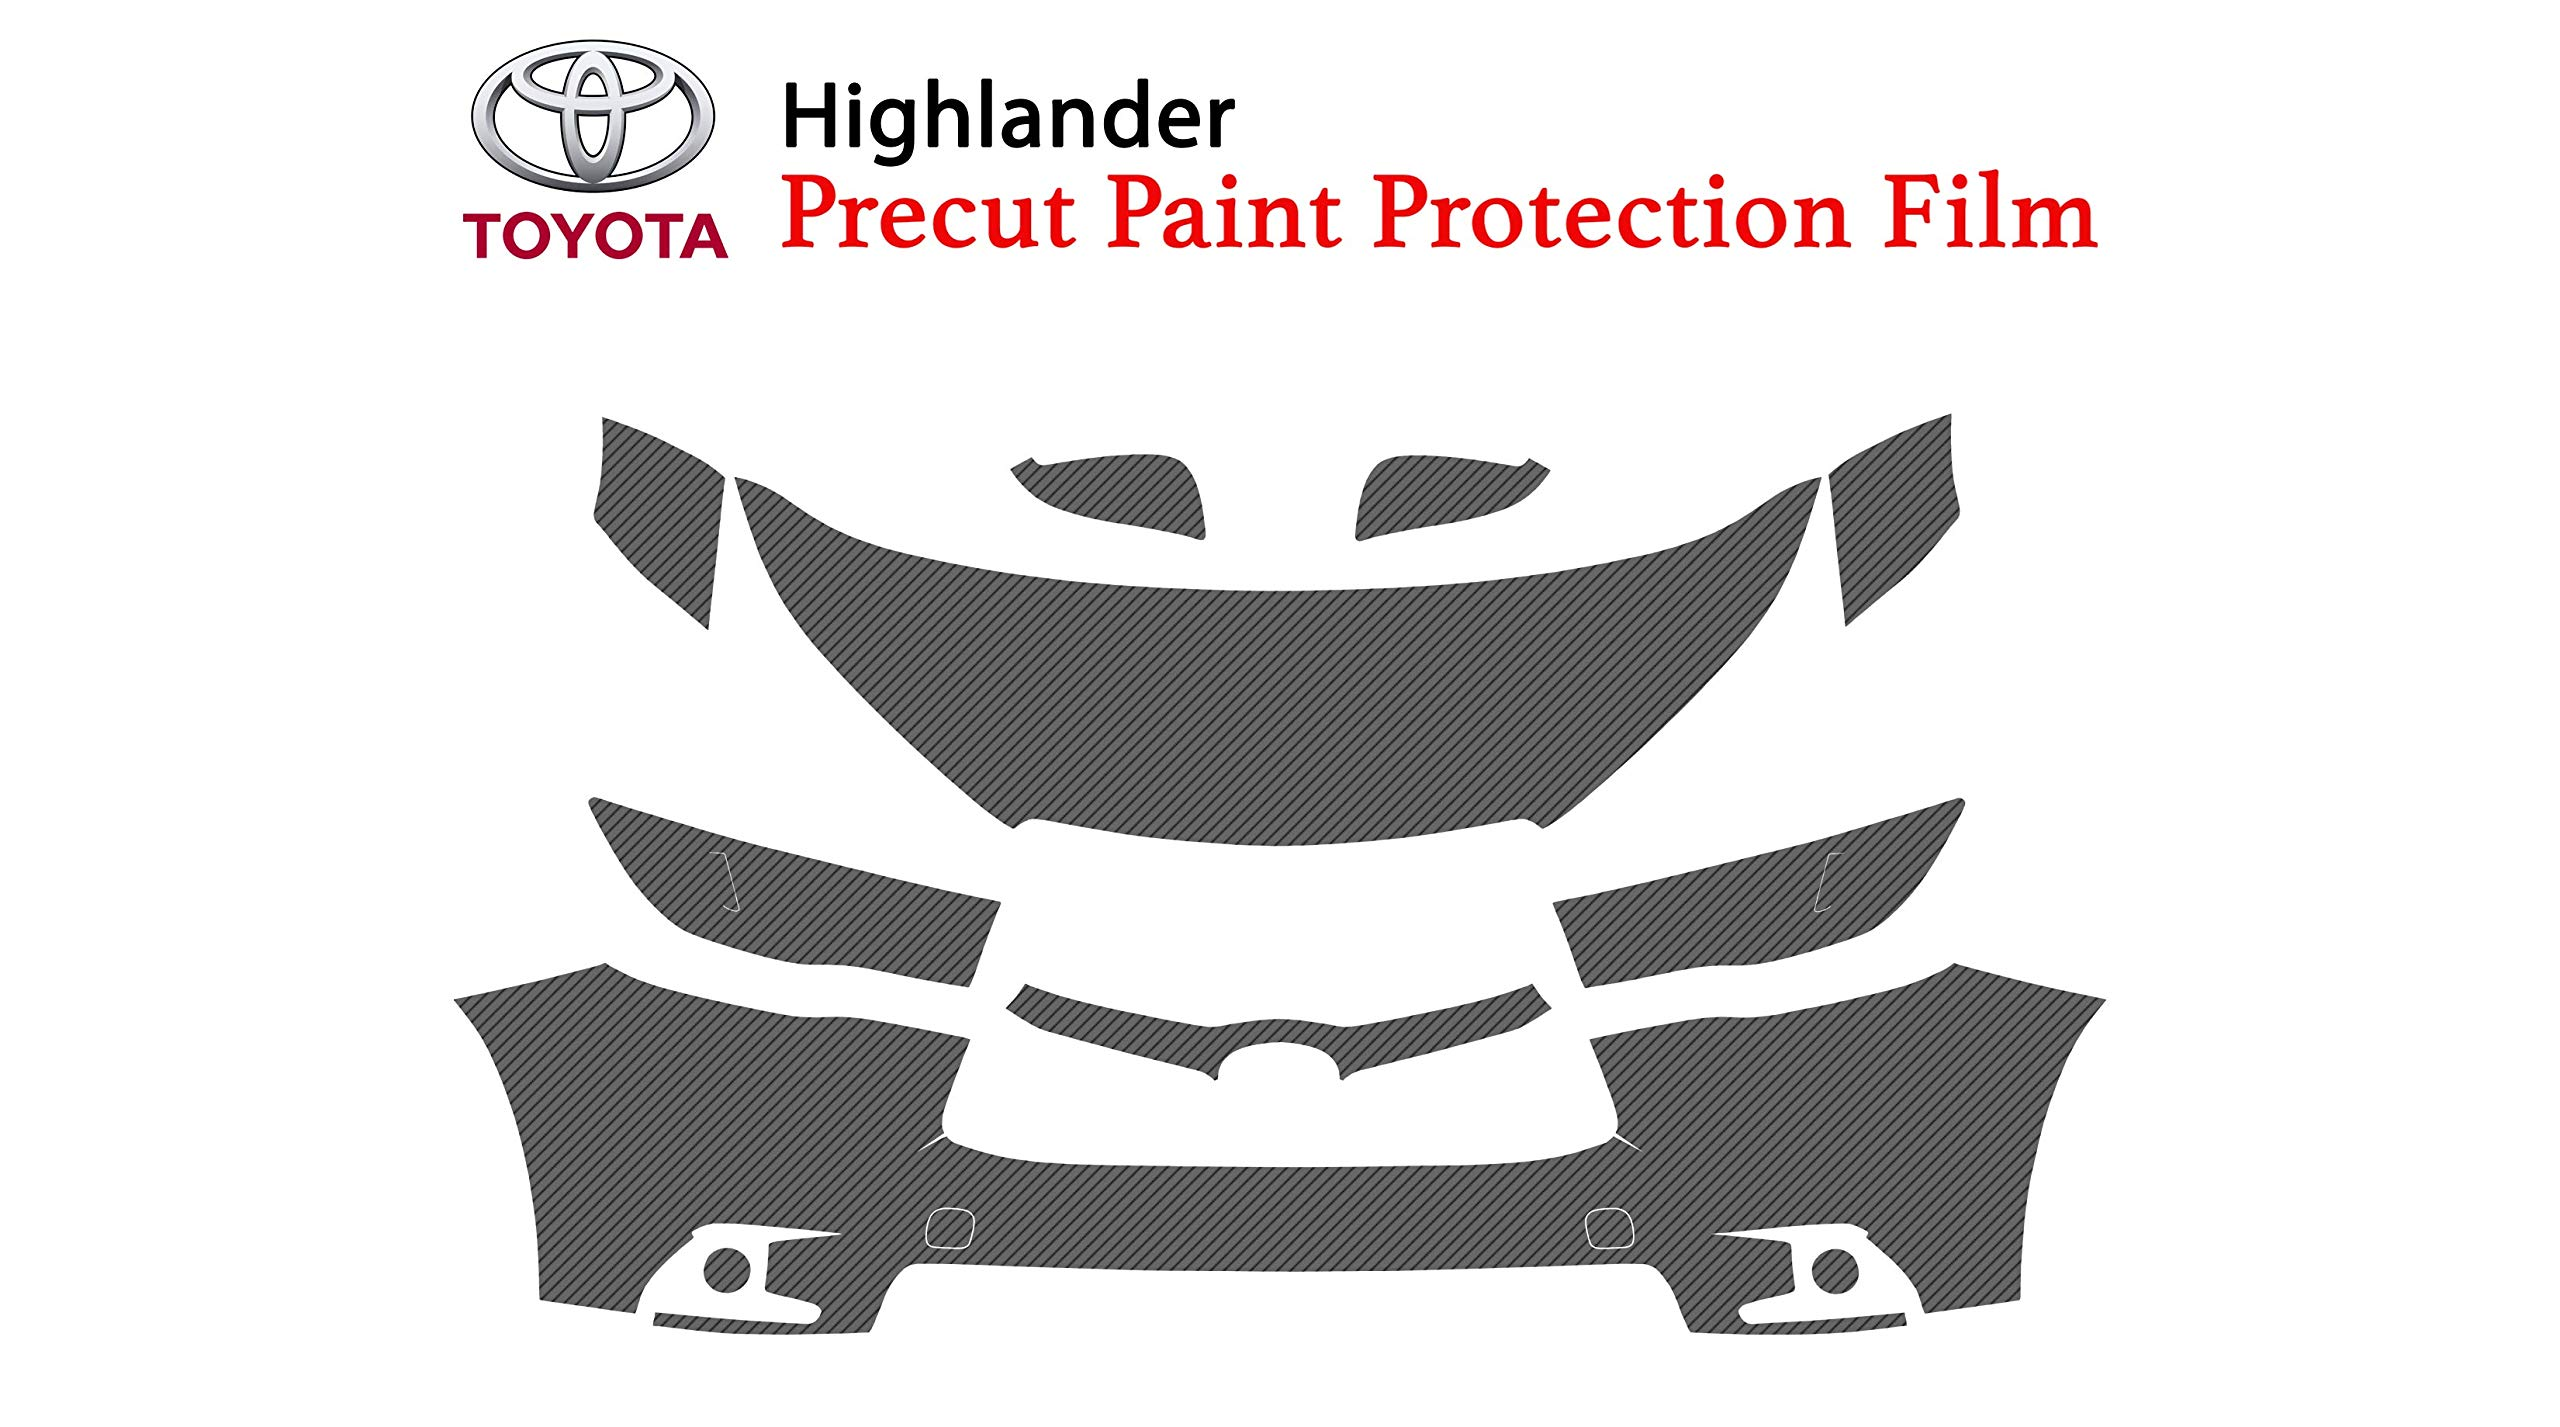 The Online Liquidator Precut Clear Bra Paint Protection Film Kit fits Toyota Highlander 2014-2019 - Full Front Vinyl Wrap Surface Safeguard Armor Cover